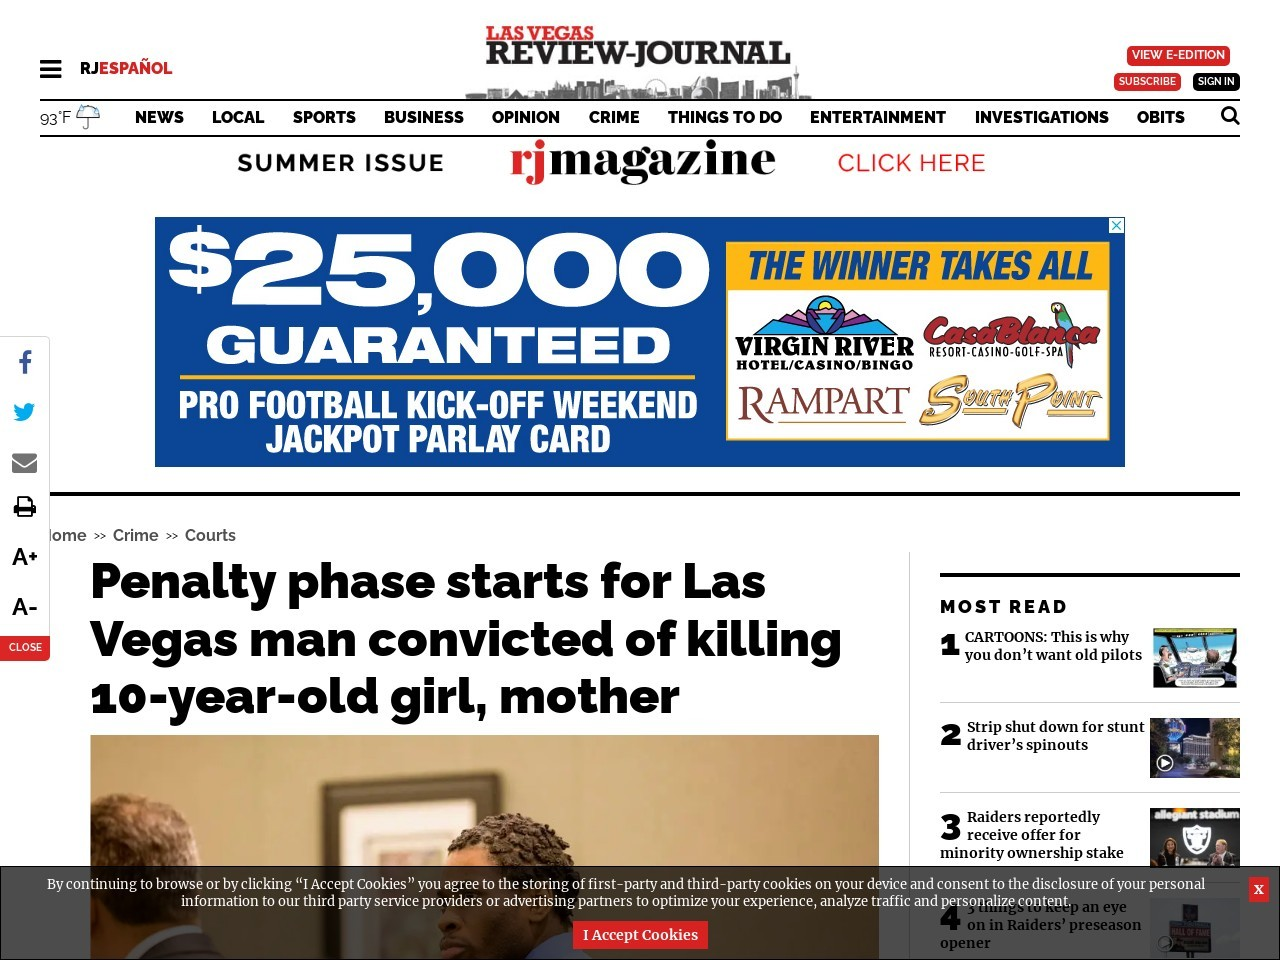 Penalty phase starts for Las Vegas man convicted of killing 10-year-old girl, mother